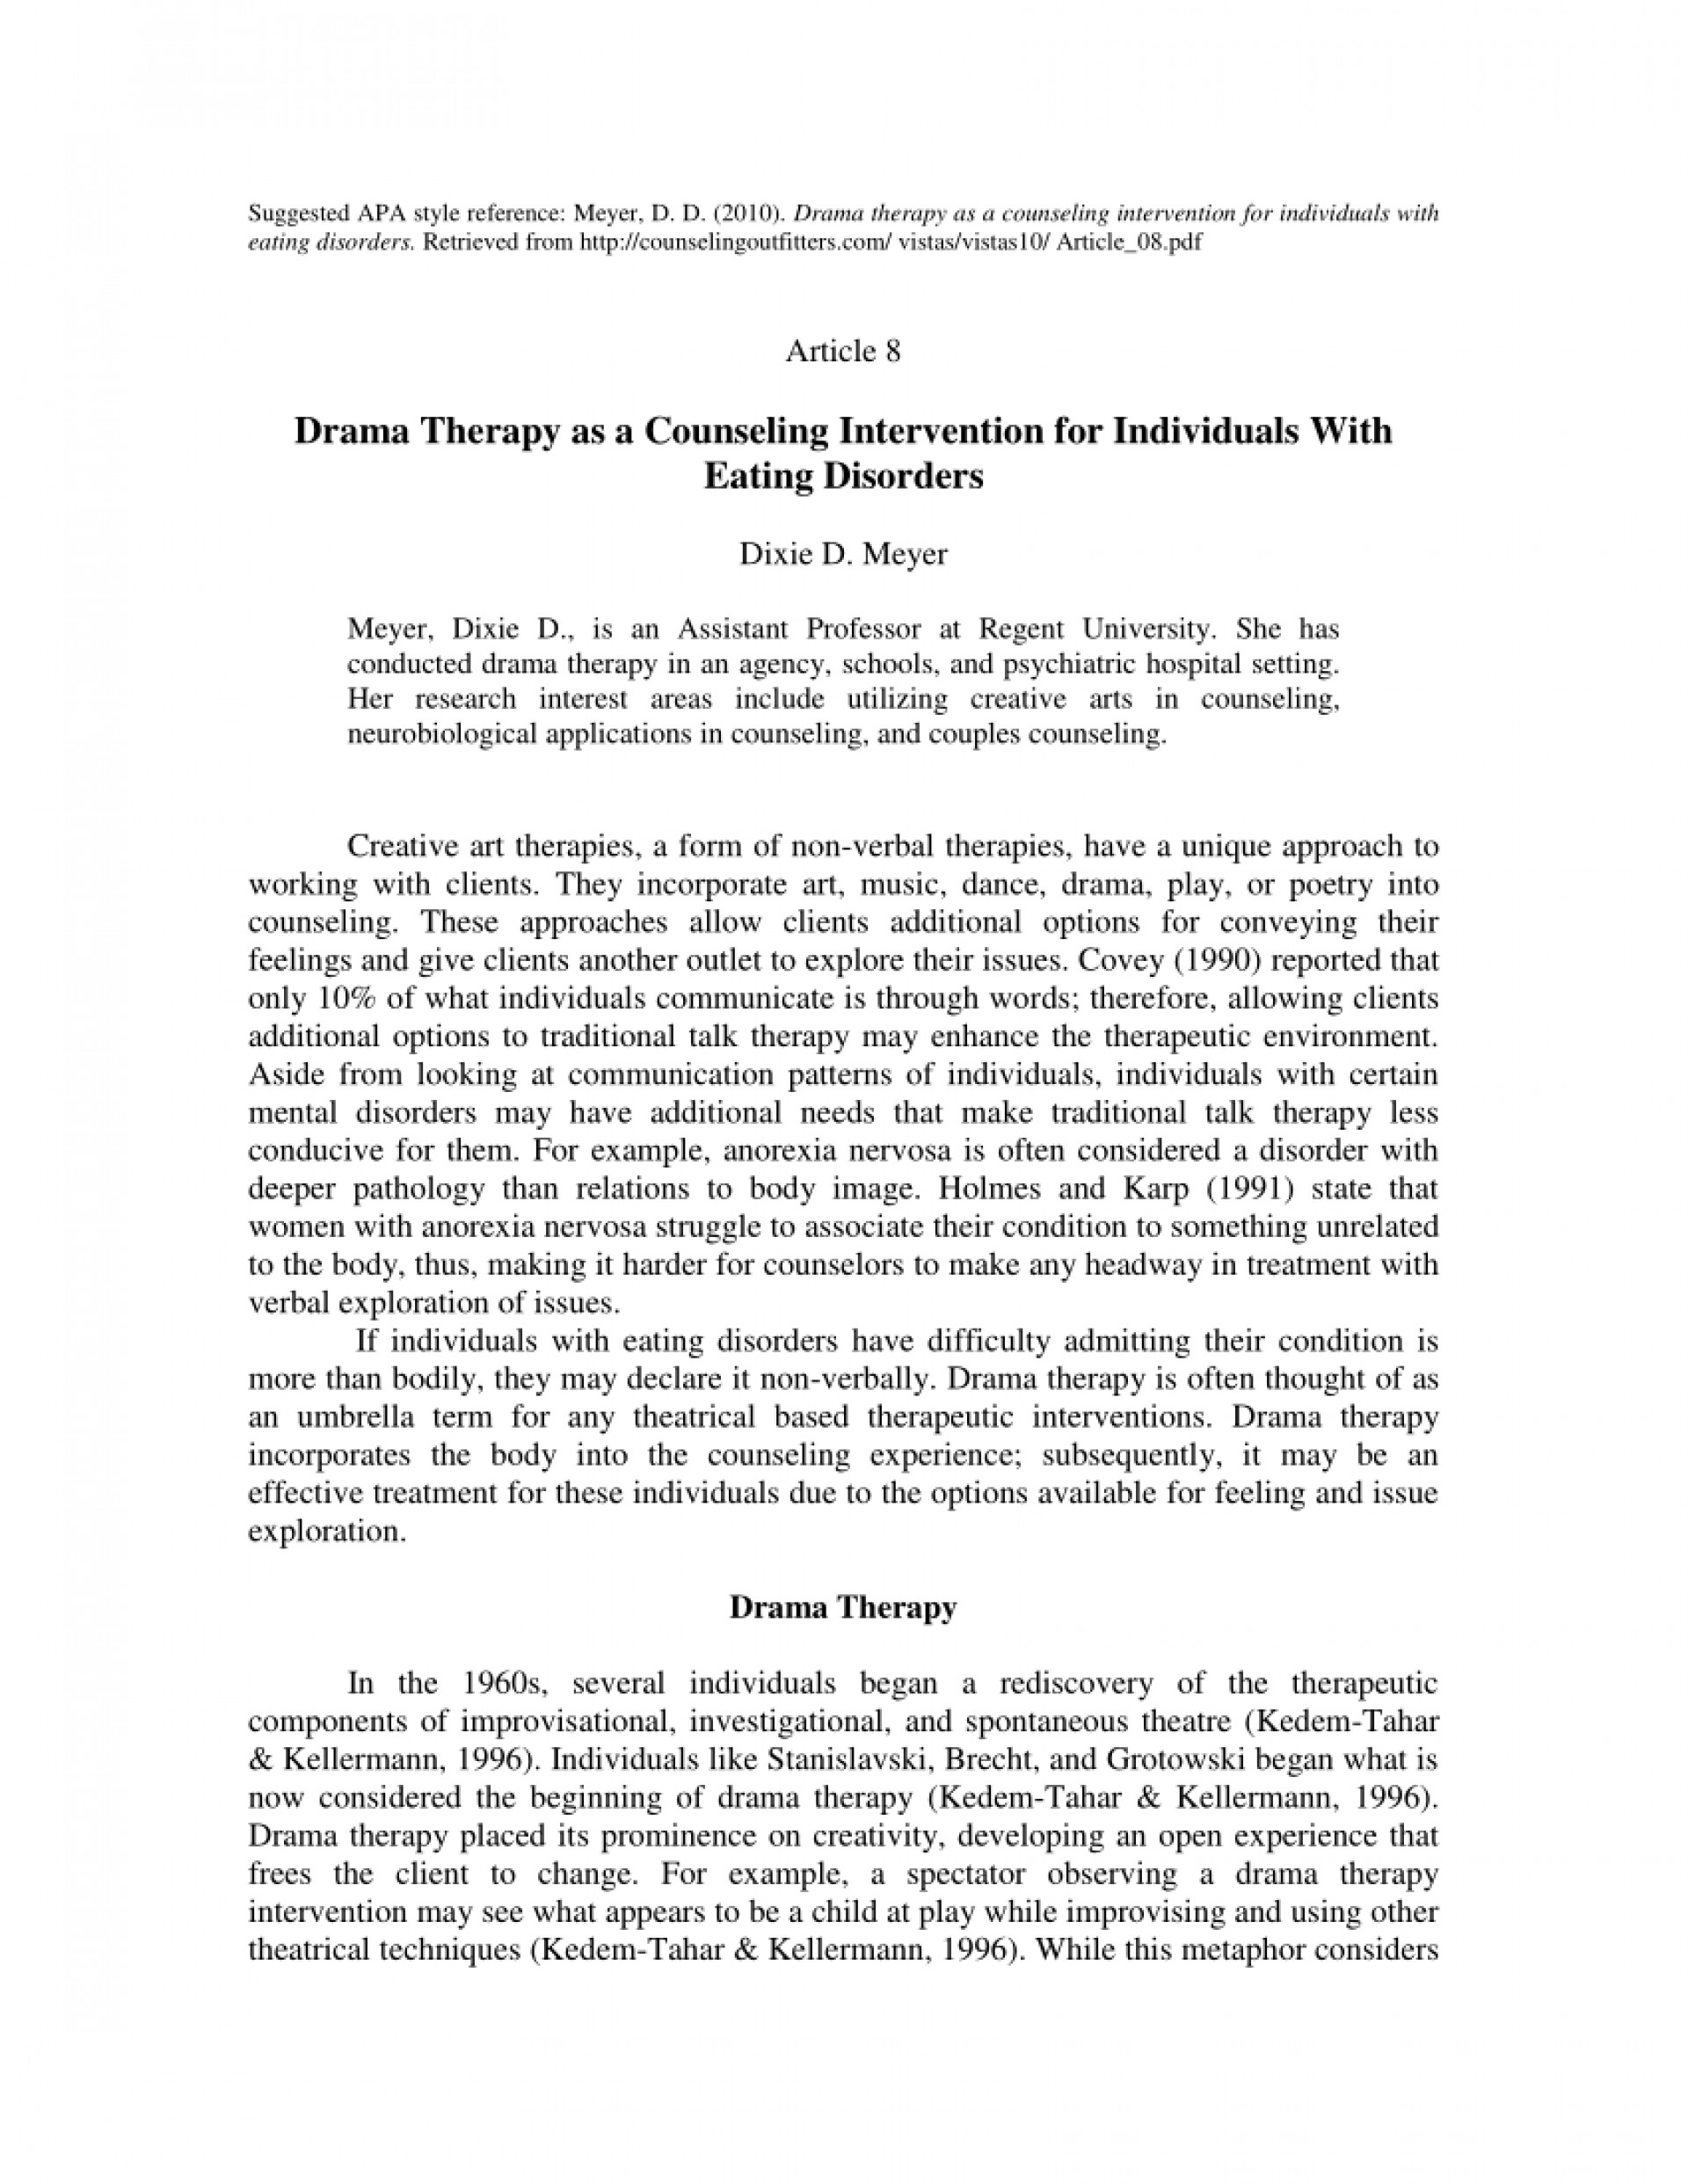 013 Apa Style Research Paper On Eating Wonderful Disorders Topics Articles And The Media 1920